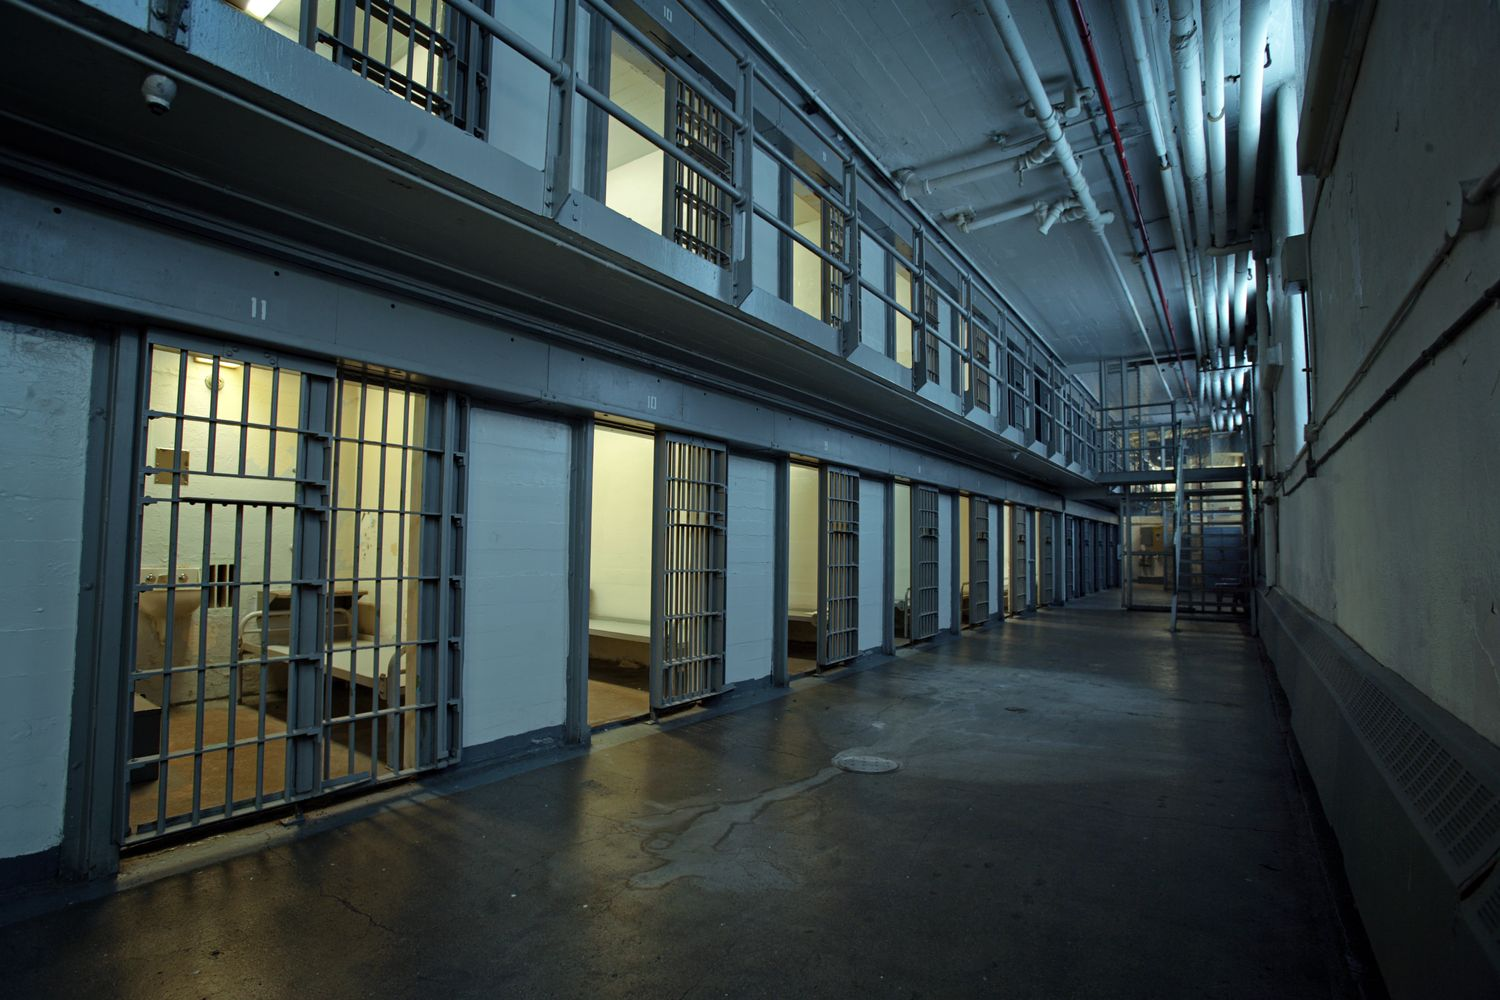 Trans Inmate Sues Illinois, Seeking Transfer to Women's Prison